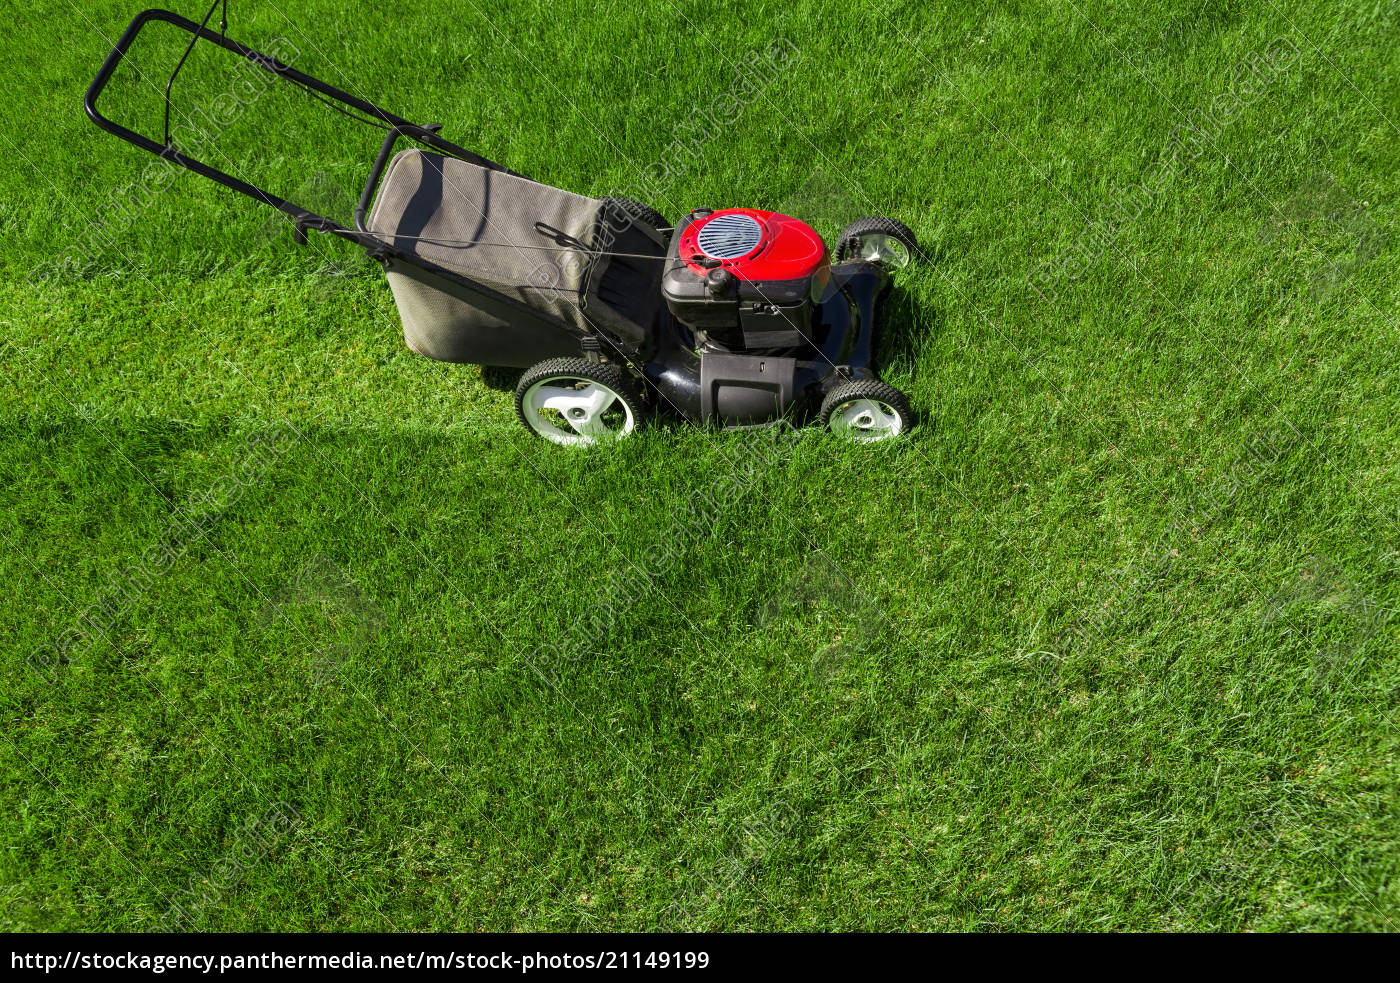 Lawn Mower In The Garden On Green Grass Royalty Free Image 21149199 Panthermedia Stock Agency